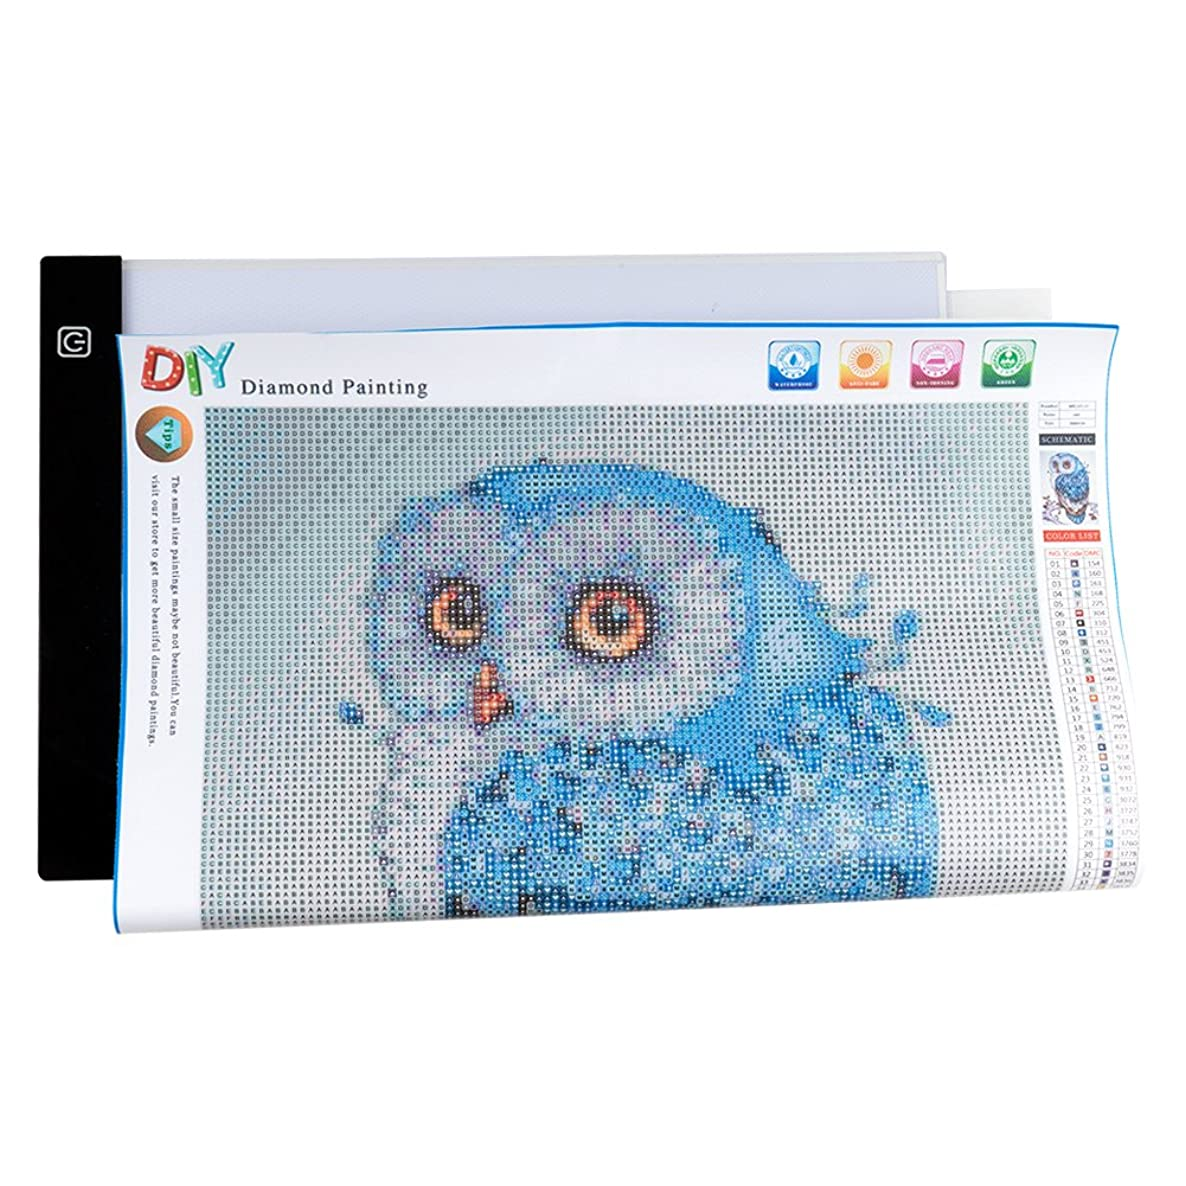 COCODE Light Tracer Box for DIY 5D Diamond Painting by Number Kit, Stepless Dimming A4 LED Tracing Pad Tracer Board with USB Powered for Applique Quilting Animation Cartoon, Tattoo Craft Projects